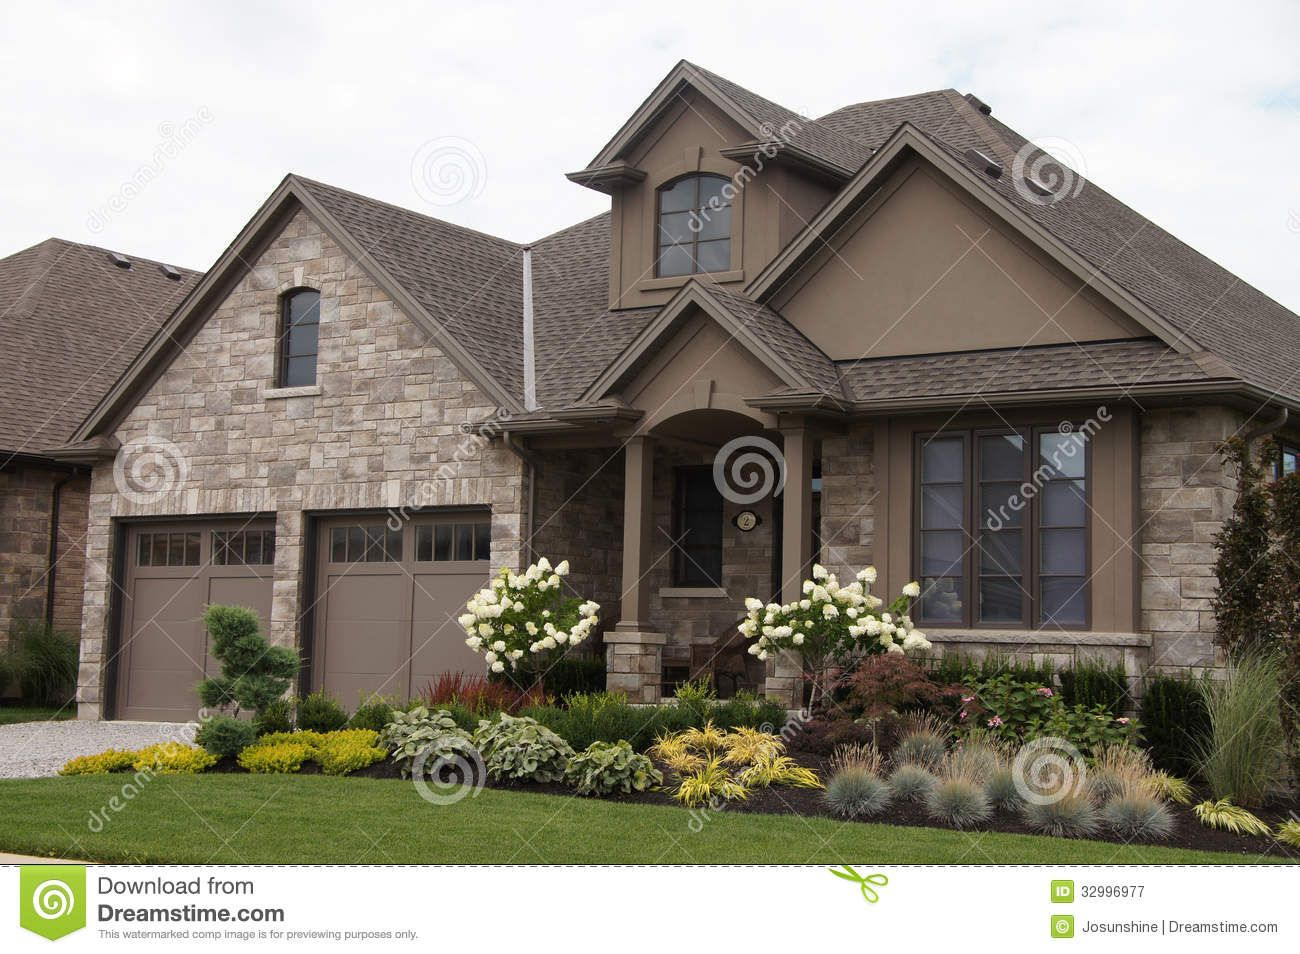 Stucco homes stucco stone house pretty garden royalty free stock photography new home - Exterior house colors brown ...